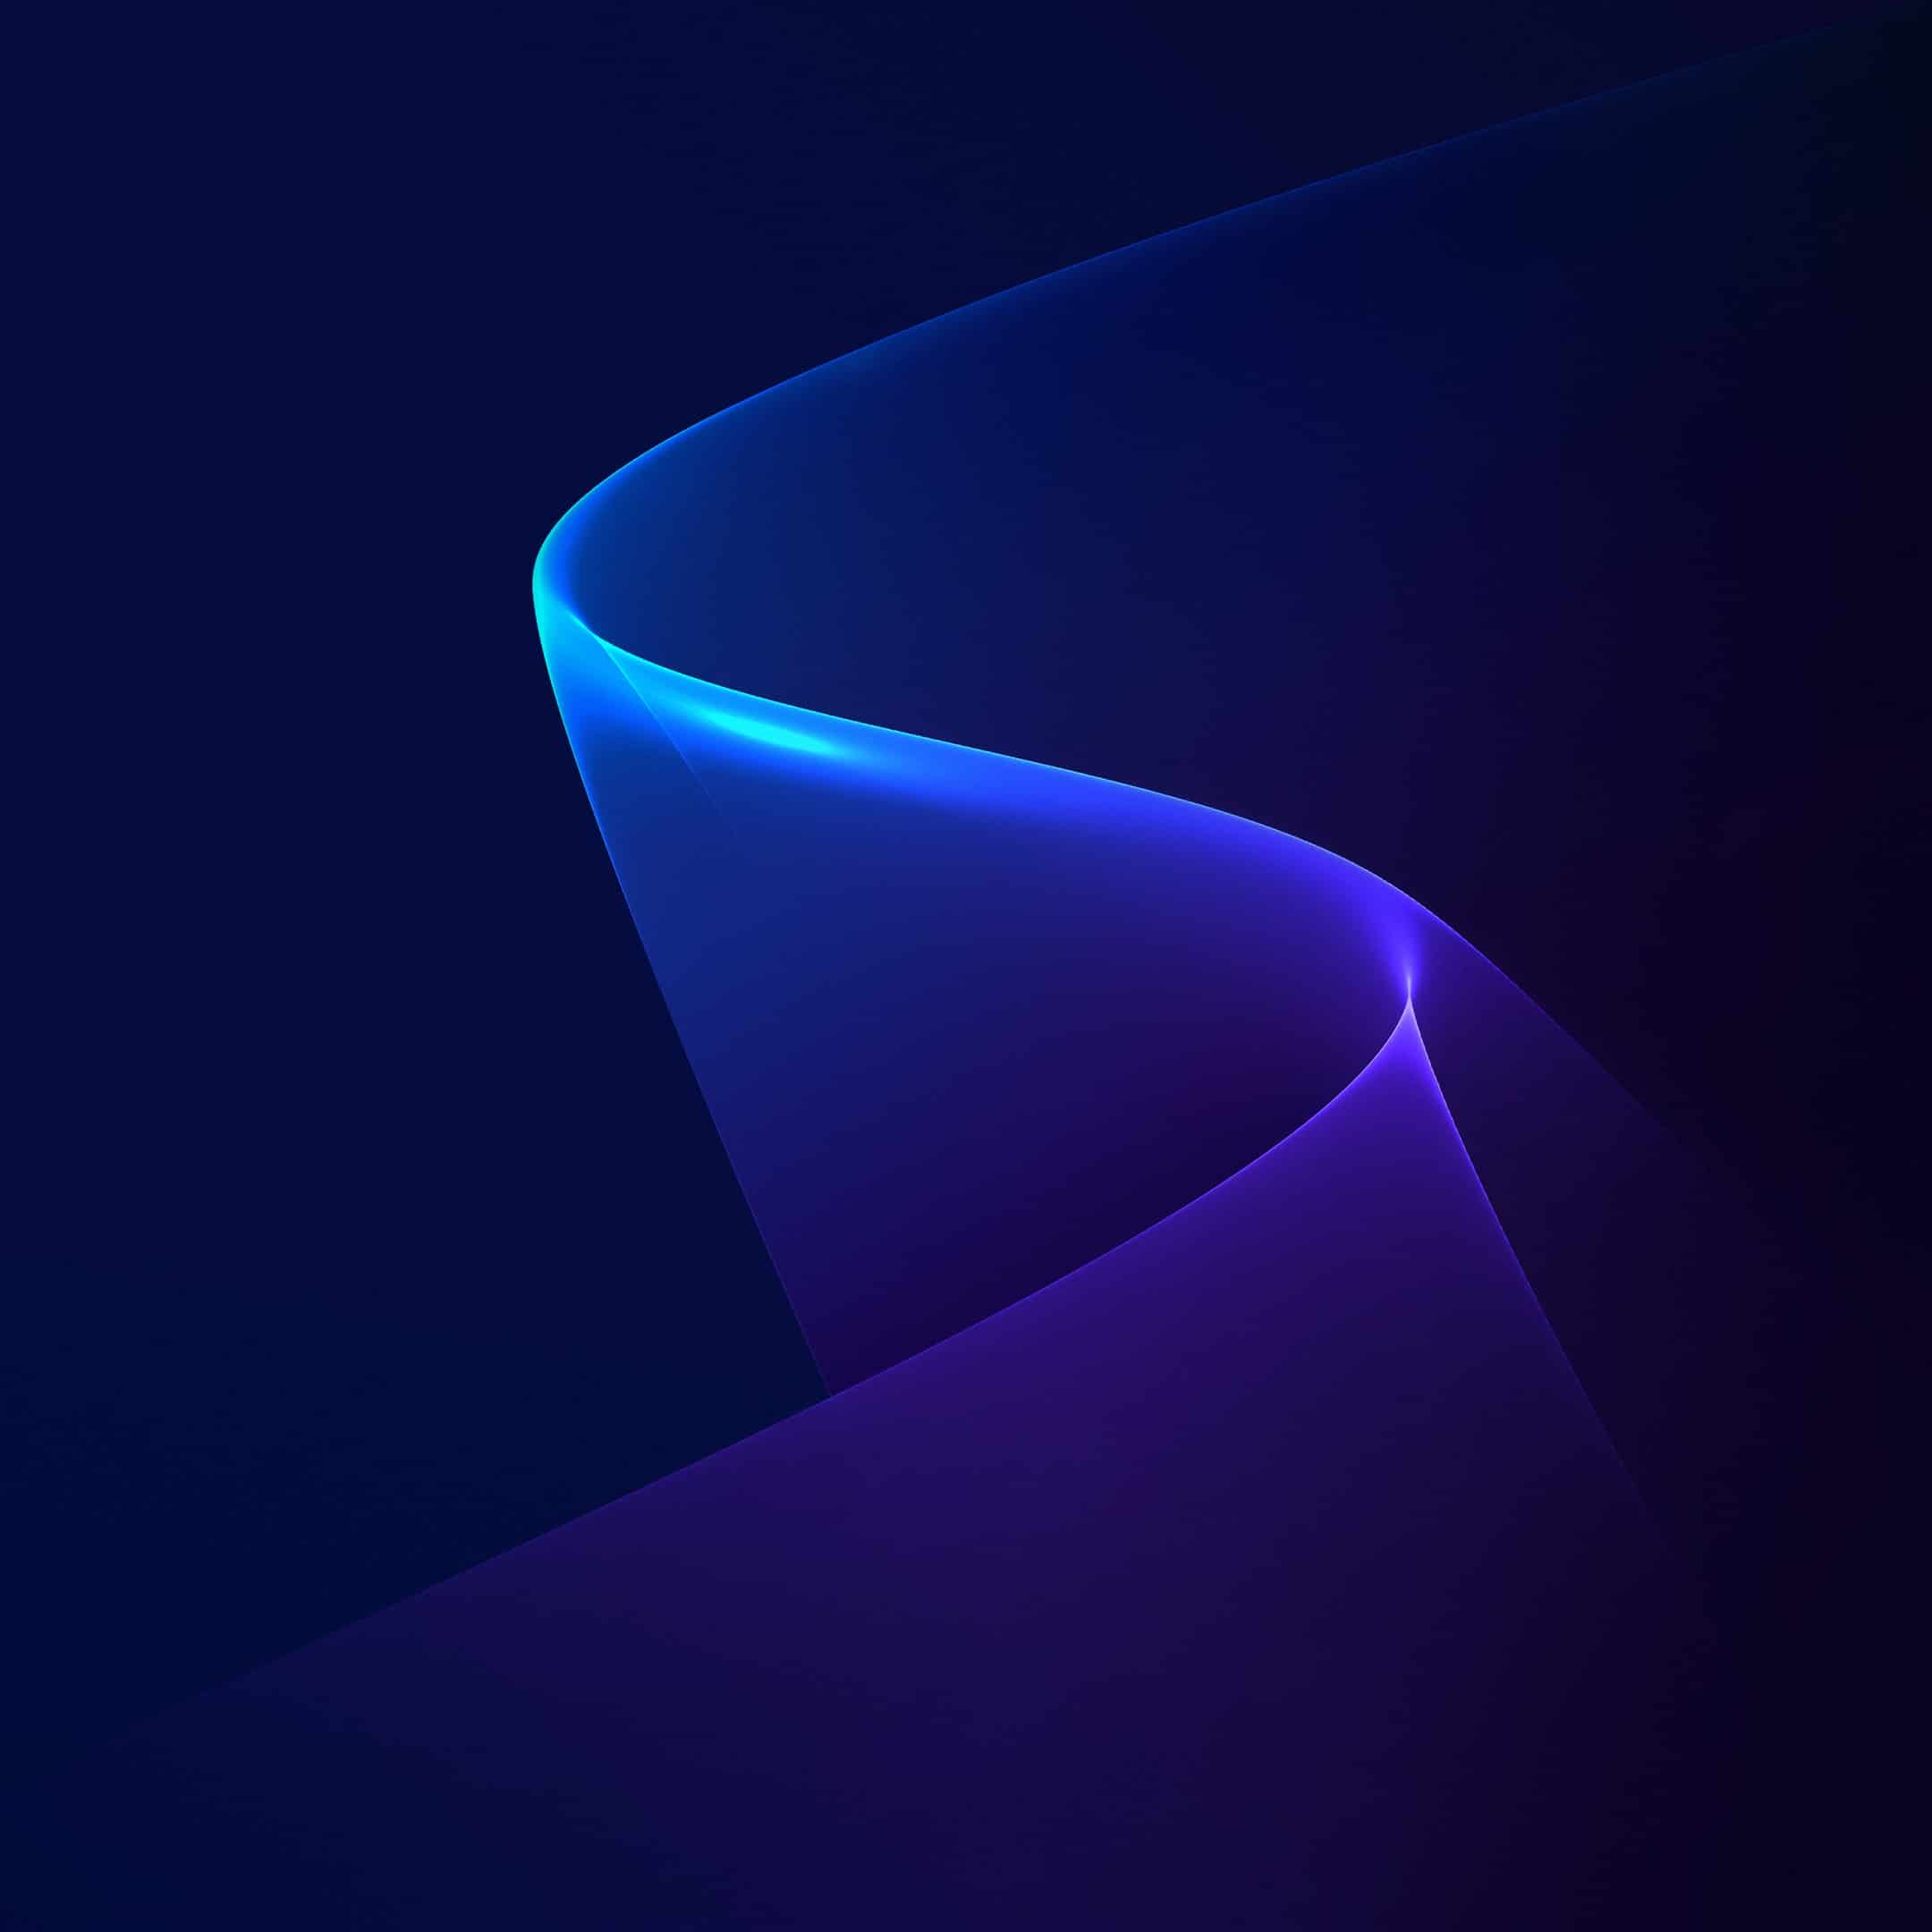 Honor-V10-Wallpapers